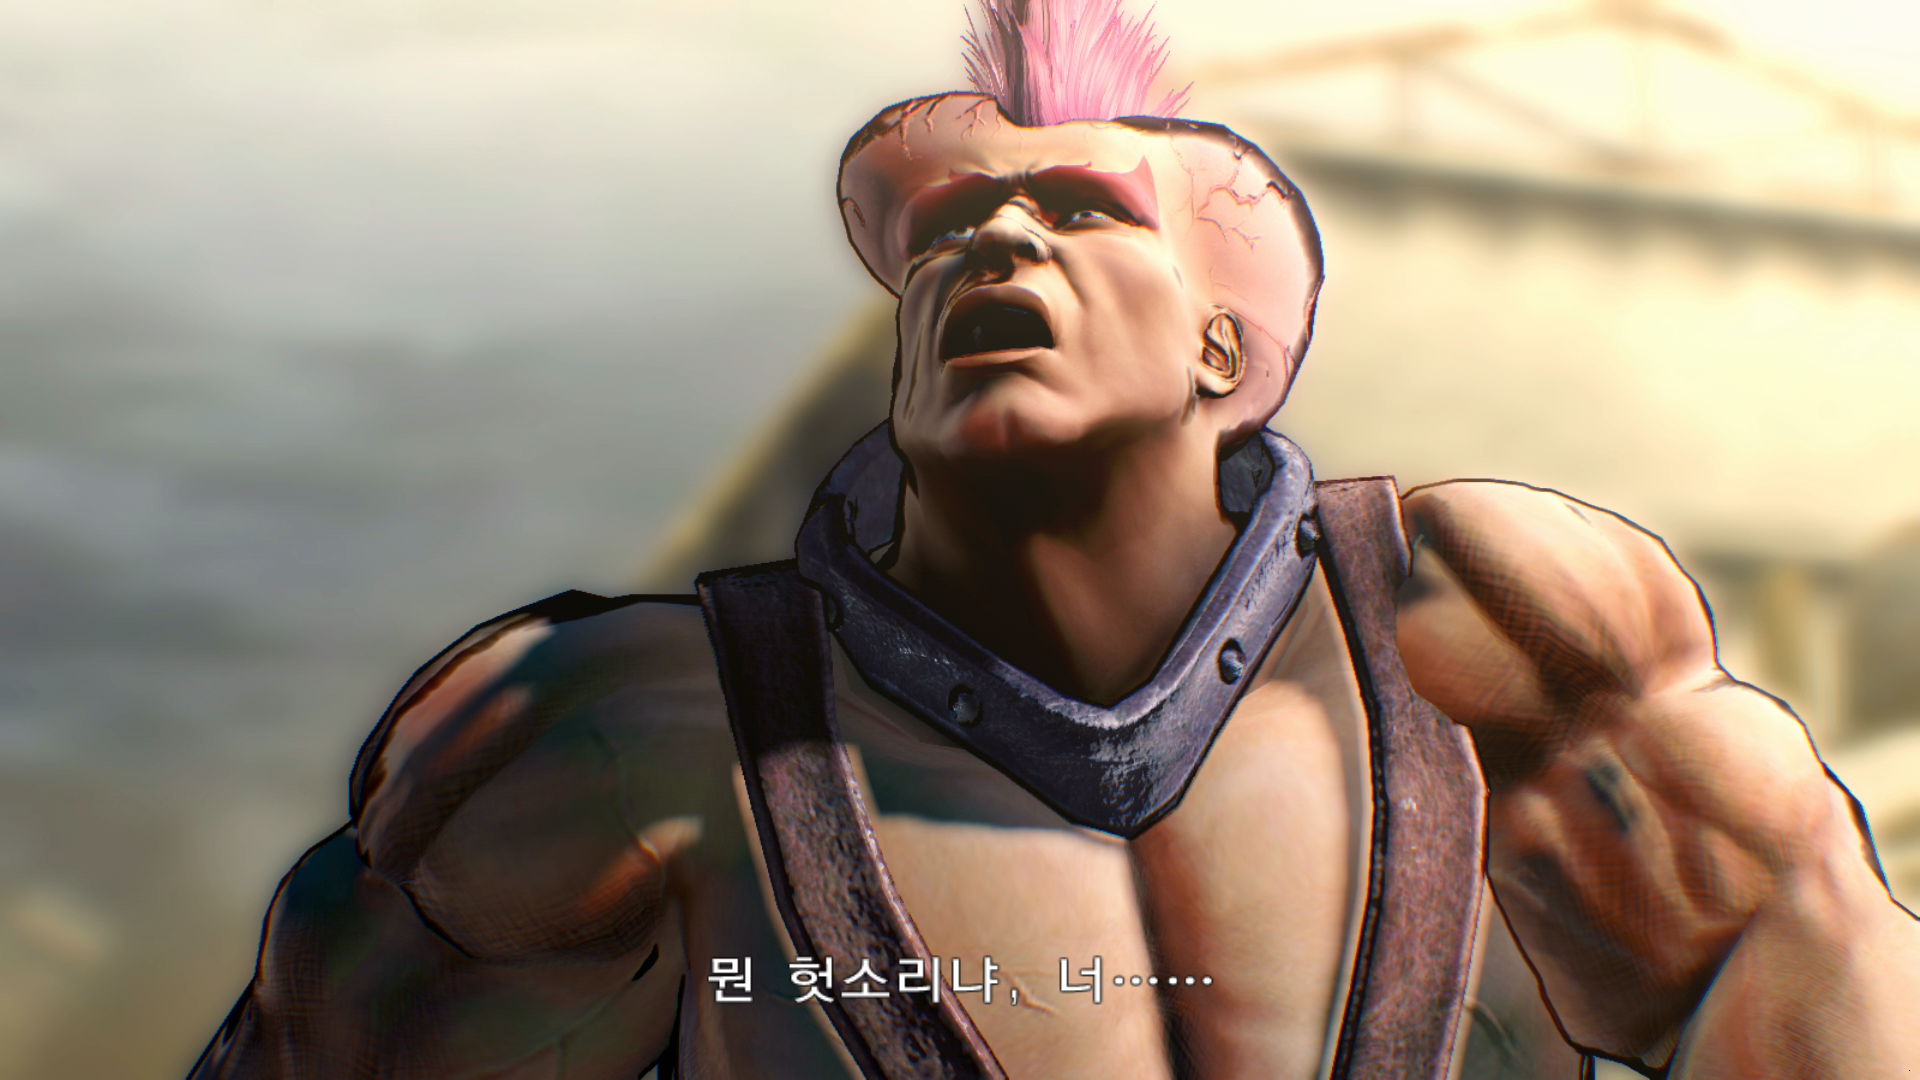 수정됨_My Great Capture Screenshot 2018-03-08 18-41-35.png